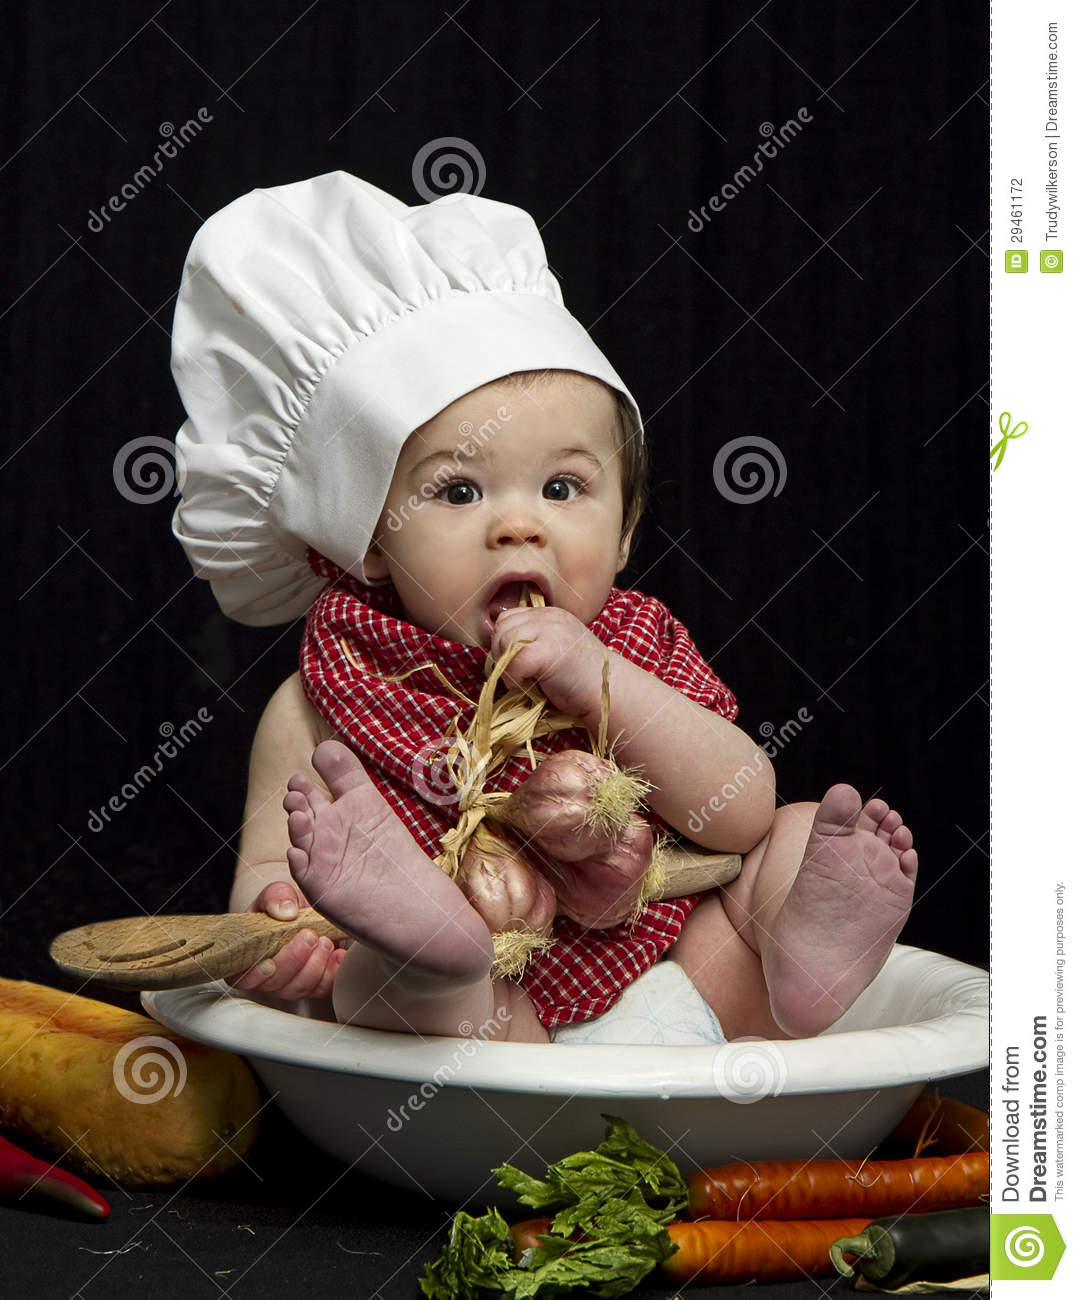 Cute Chef Wallpaper Baby Chef Eating Stock Photo Image Of Attire People